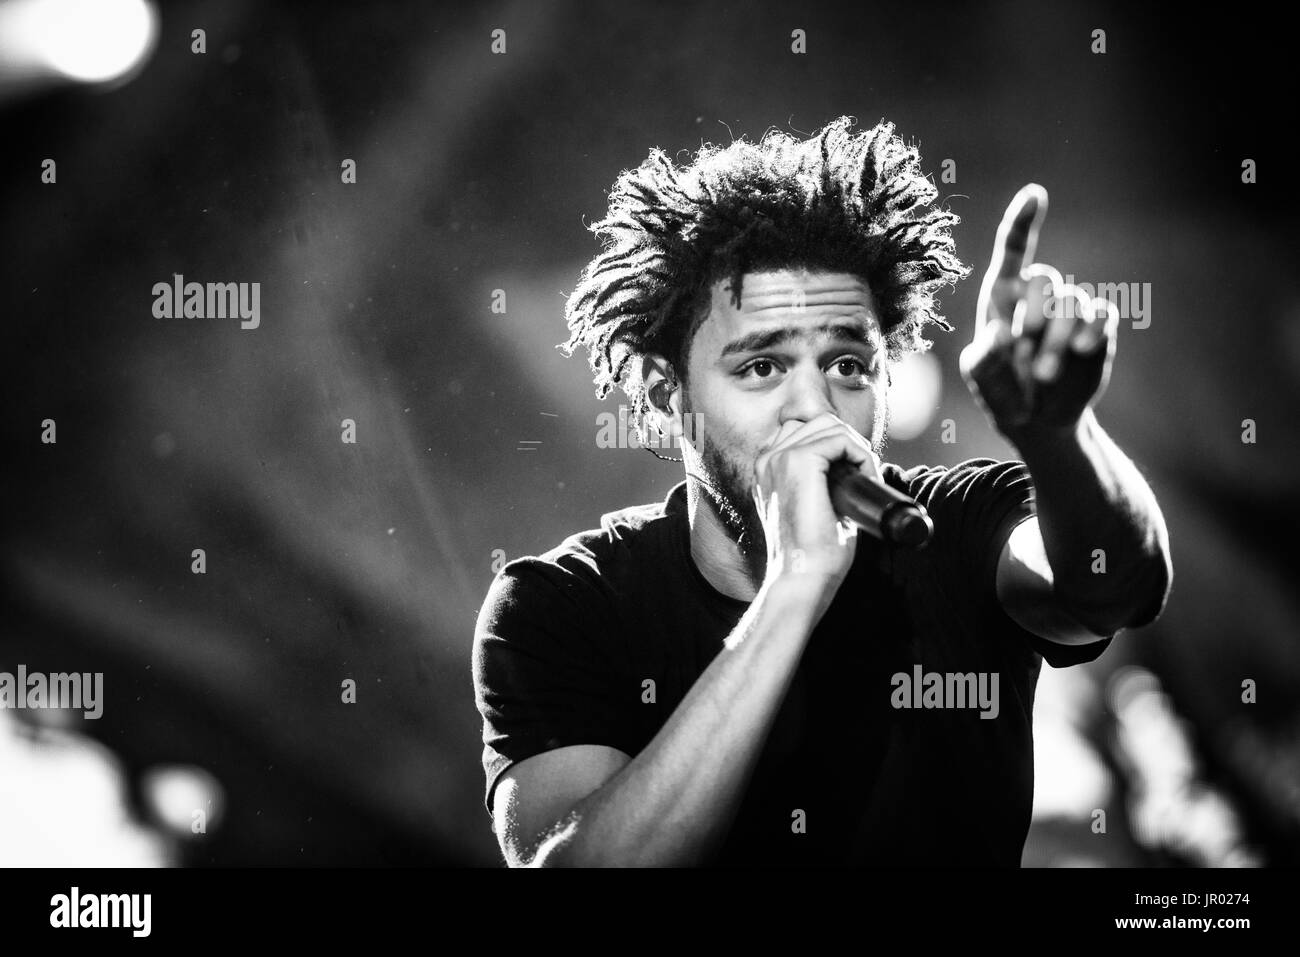 J Cole Black And White Image Black And White Photography